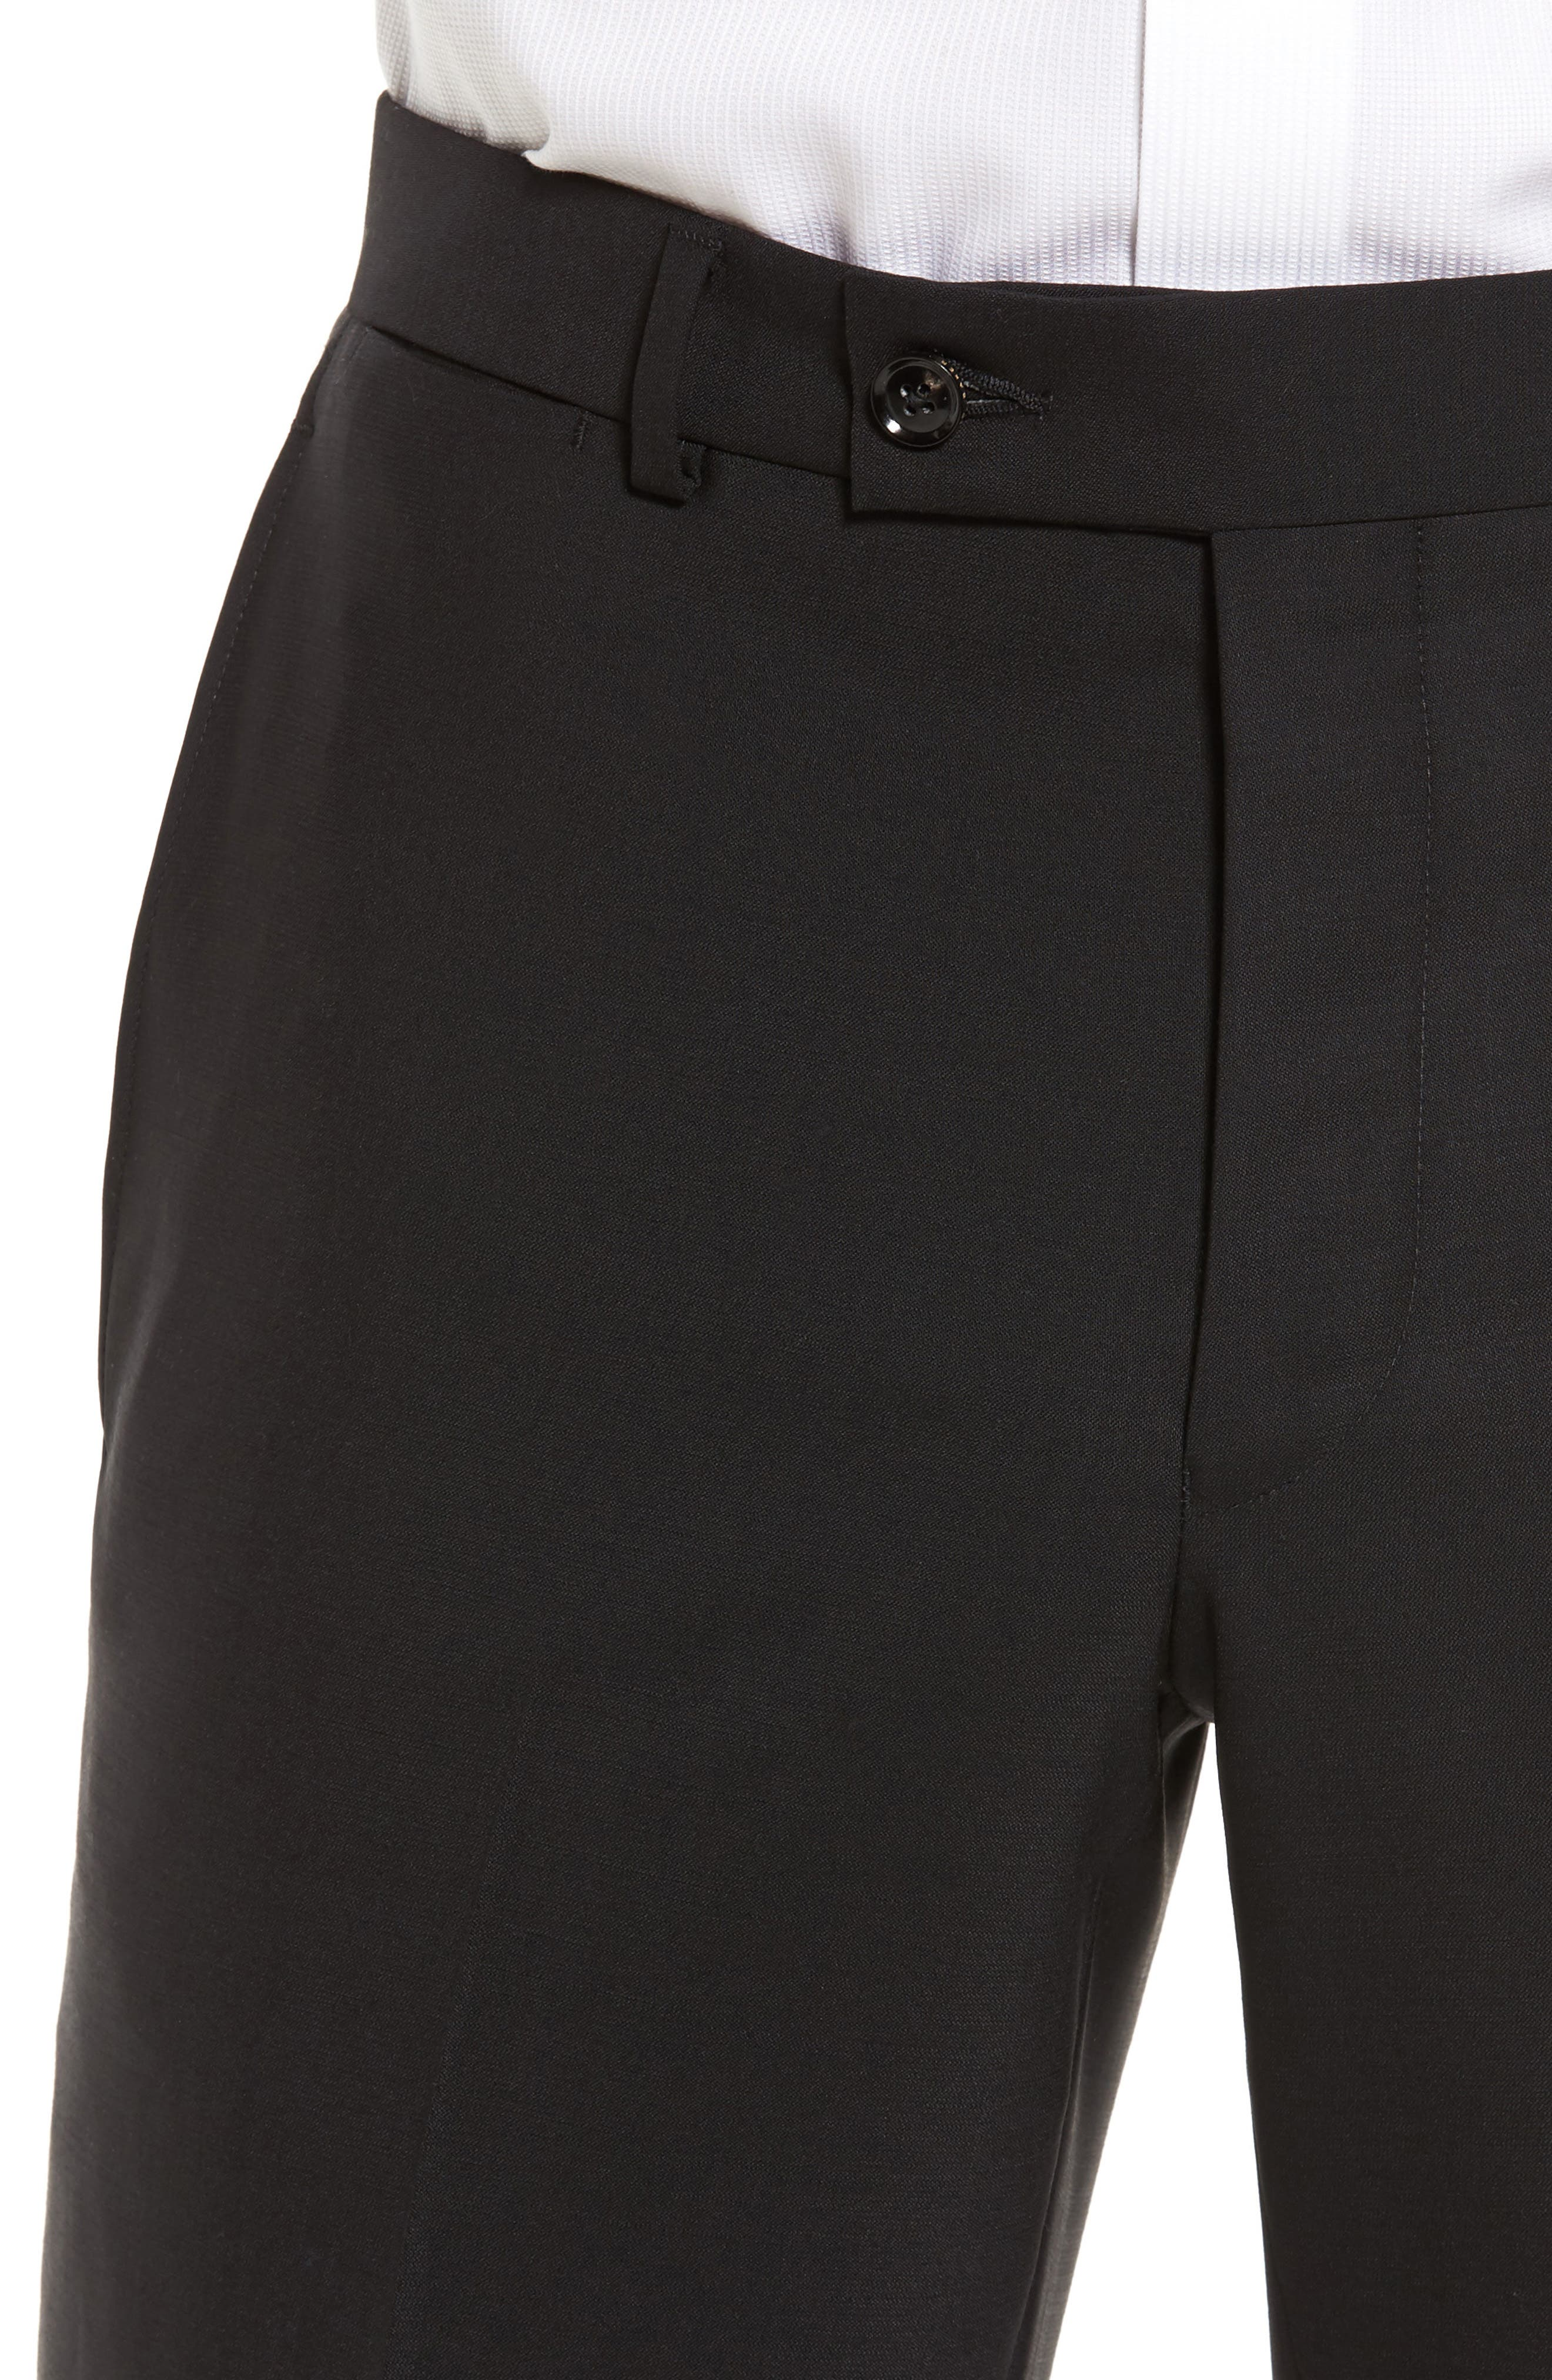 Jefferson Flat Front Solid Wool Trousers,                             Alternate thumbnail 5, color,                             BLACK